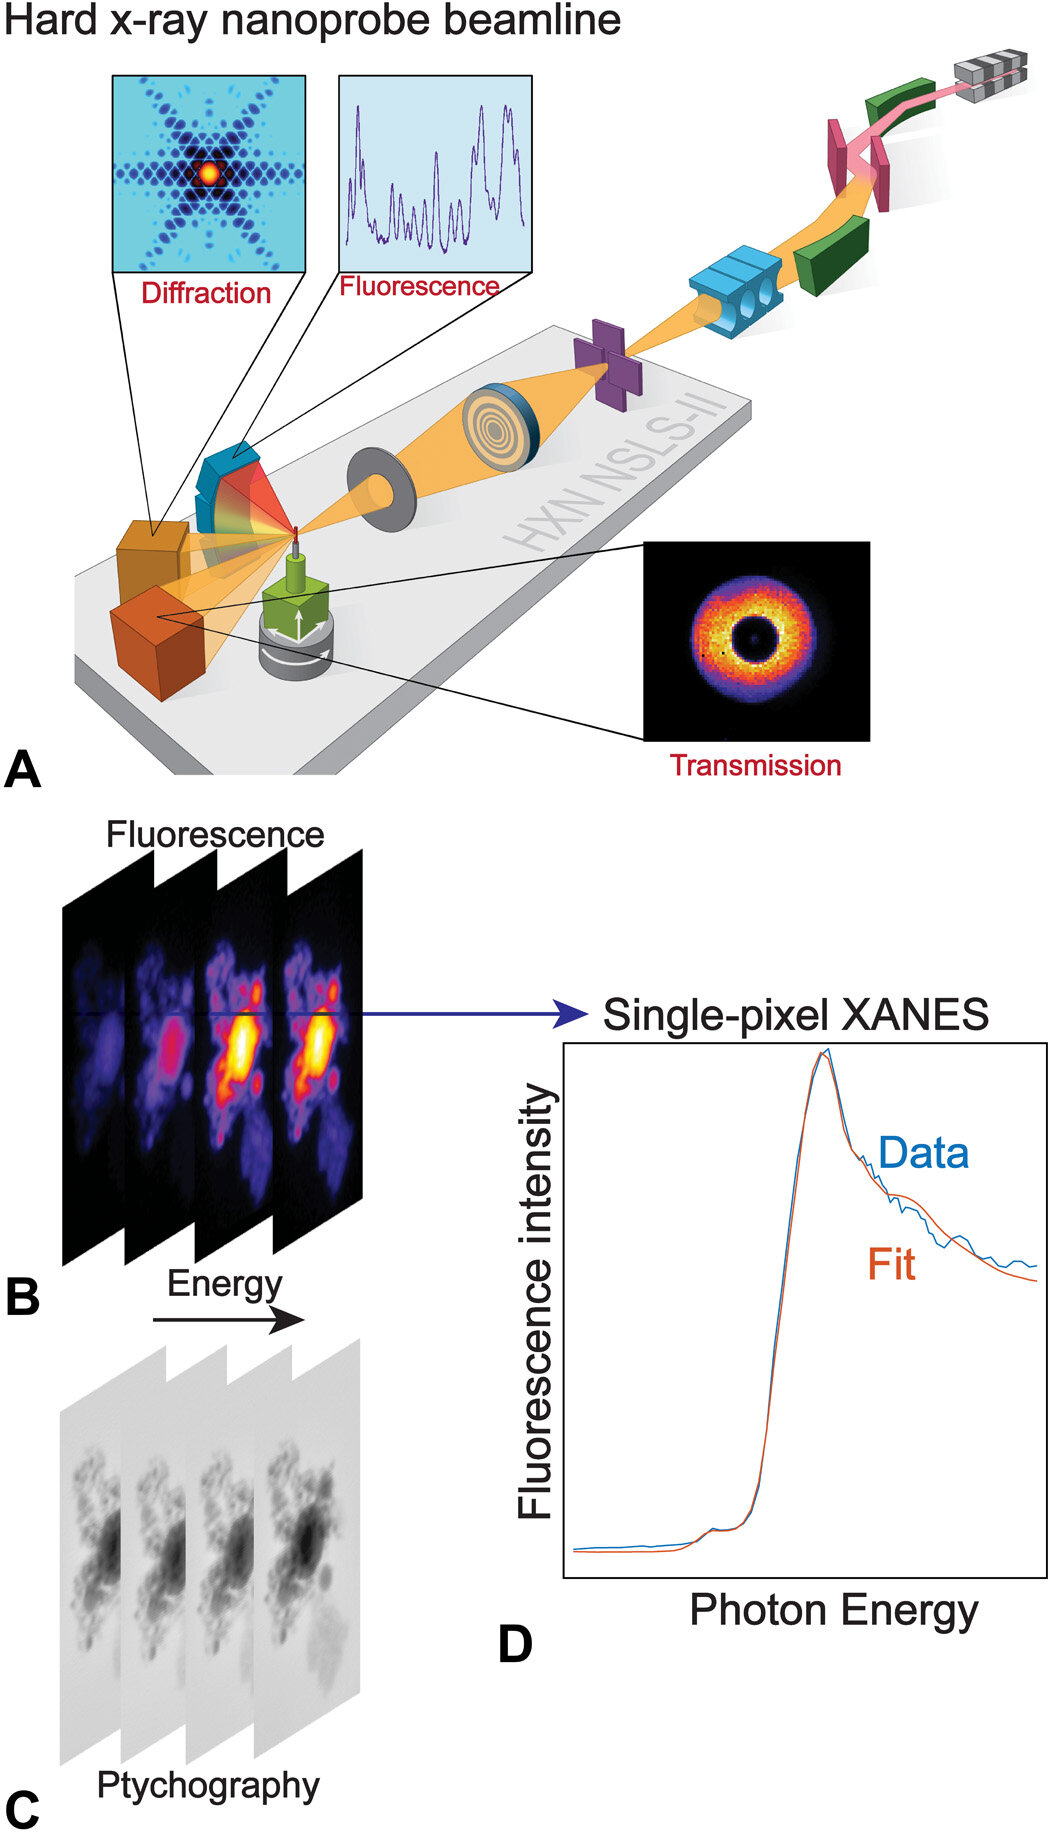 Acquisition of nano-XANES